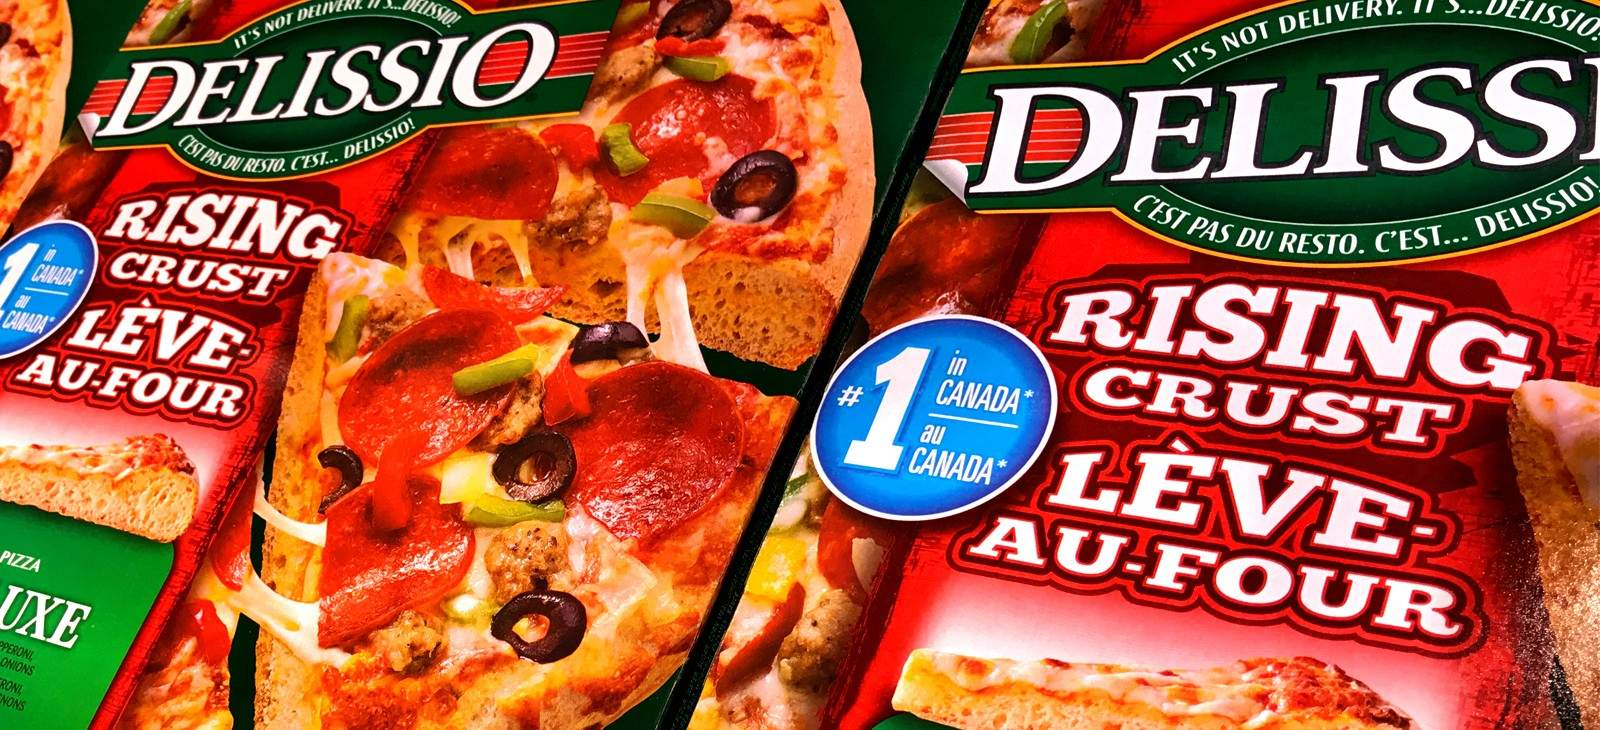 Pizza boxes with bilingual packaging in English and French